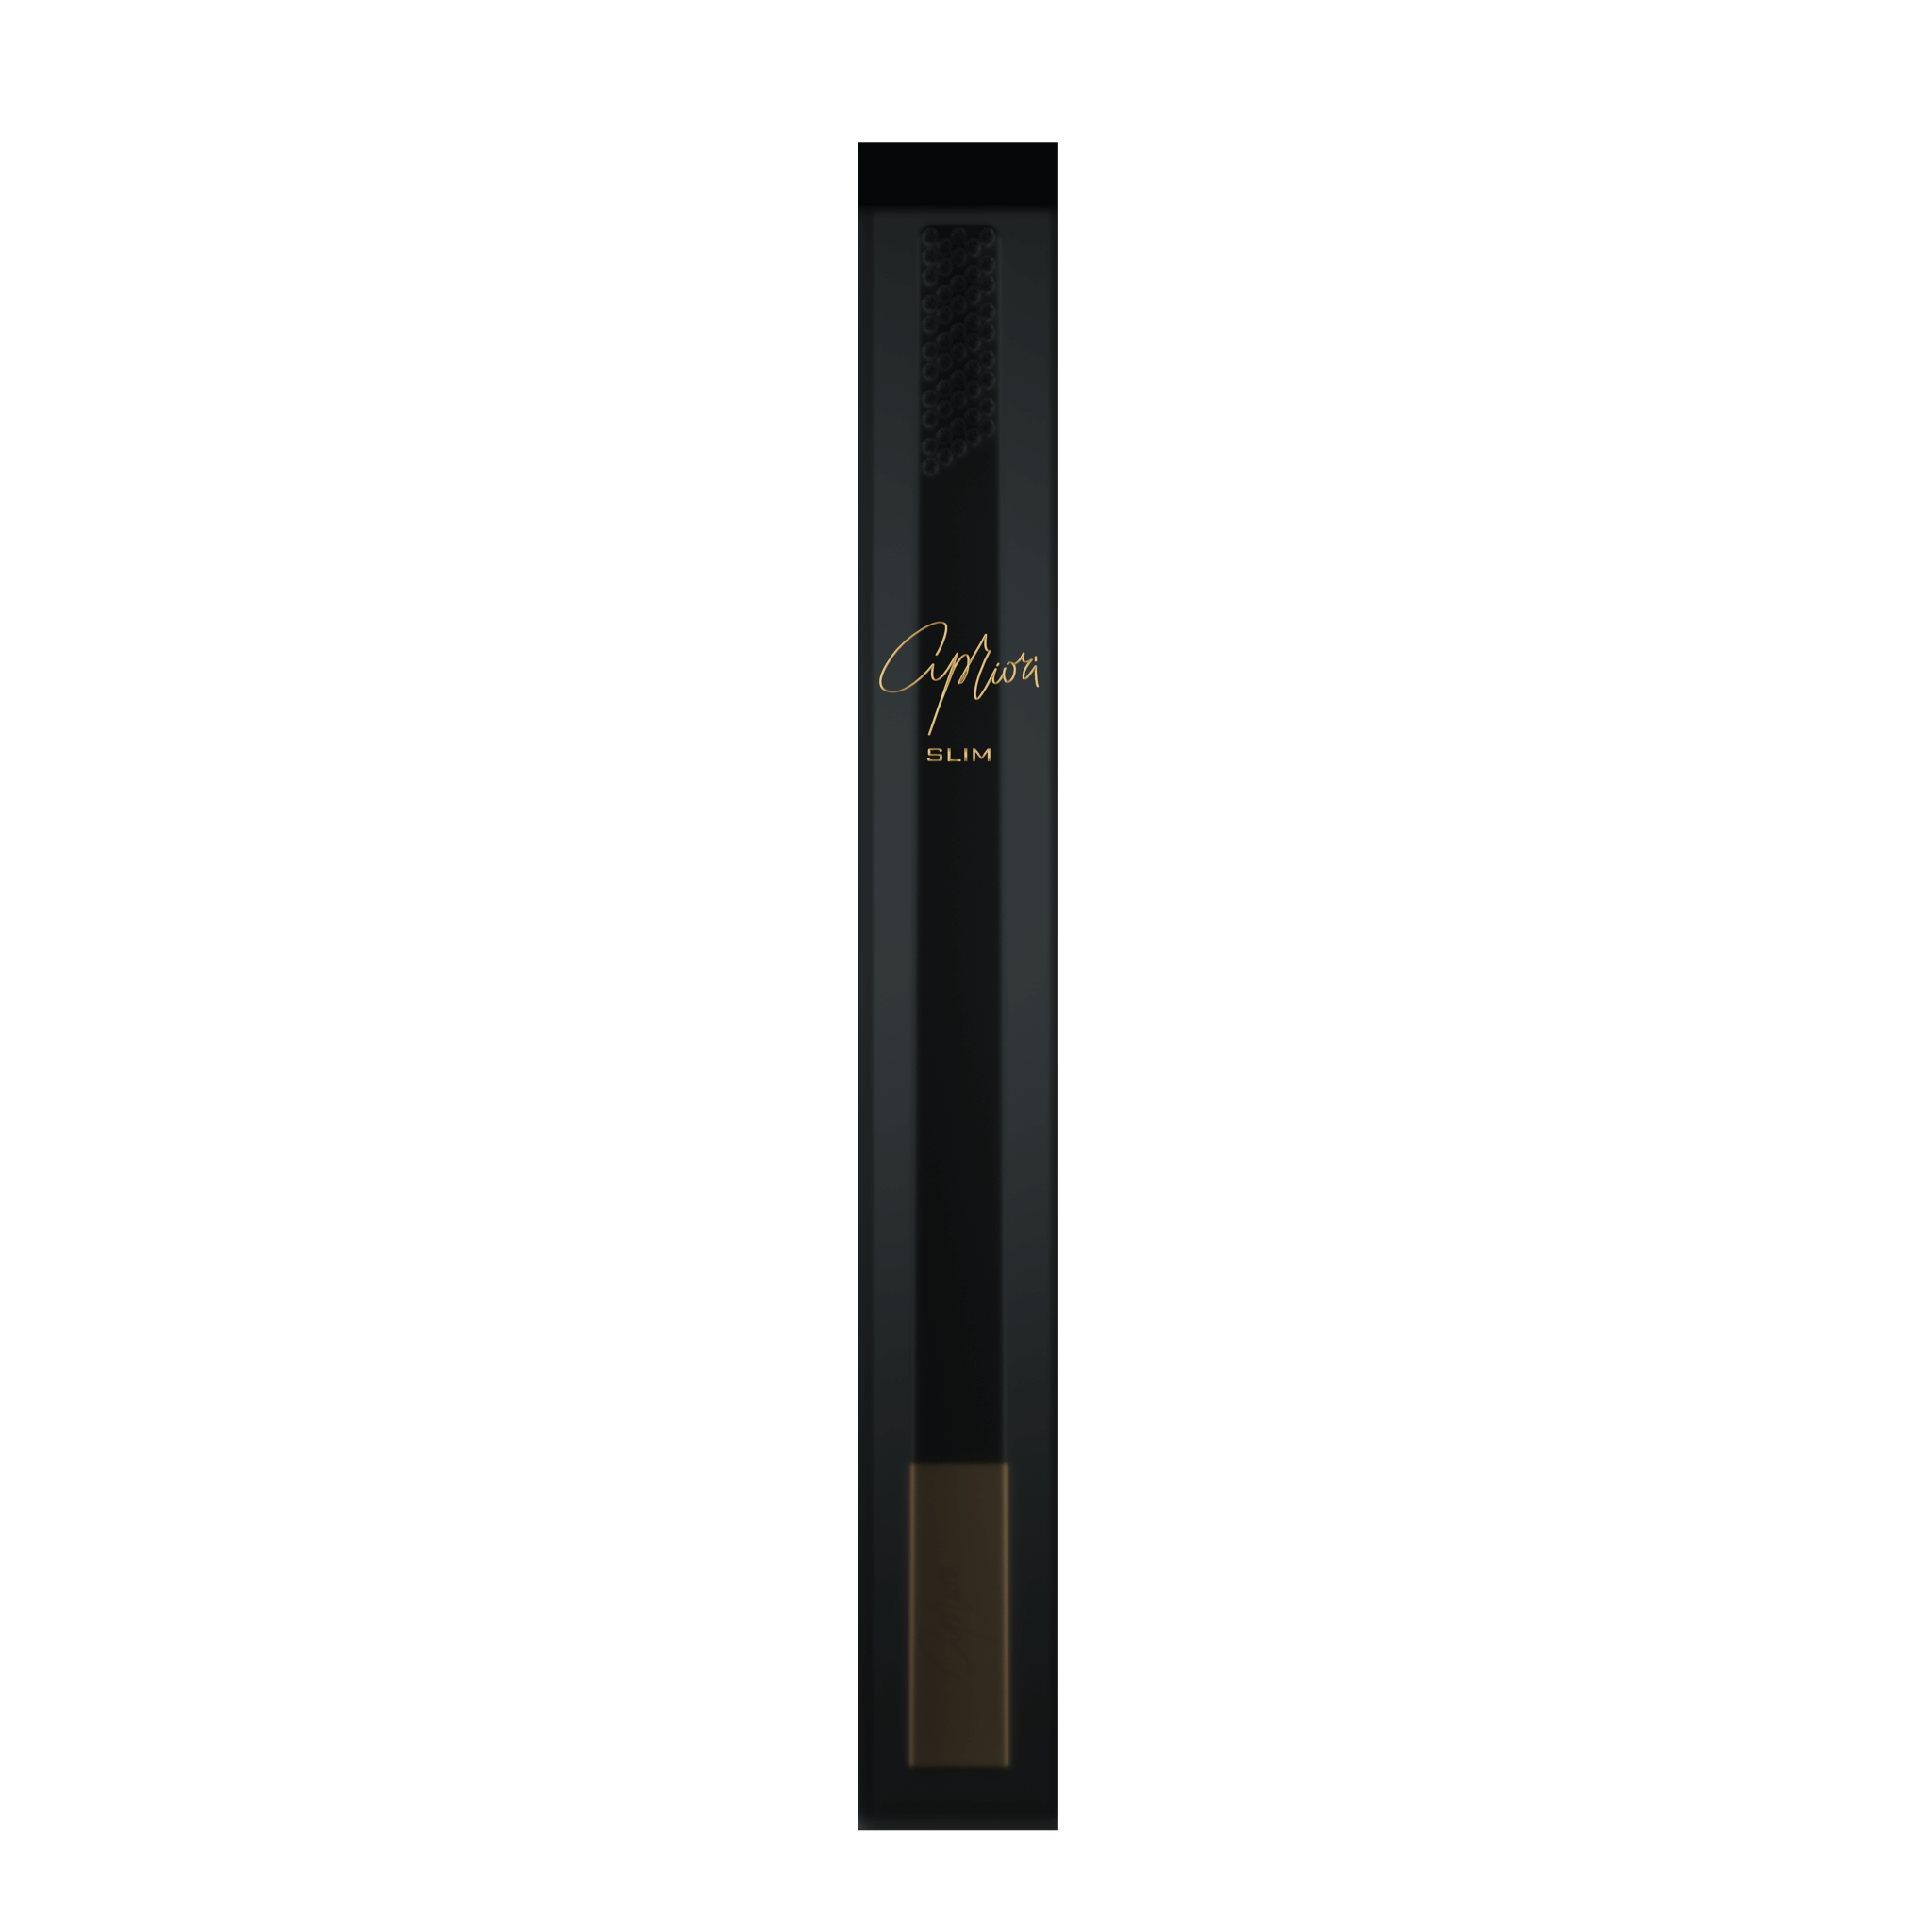 SLIM by Apriori black & gold disposable toothbrush package